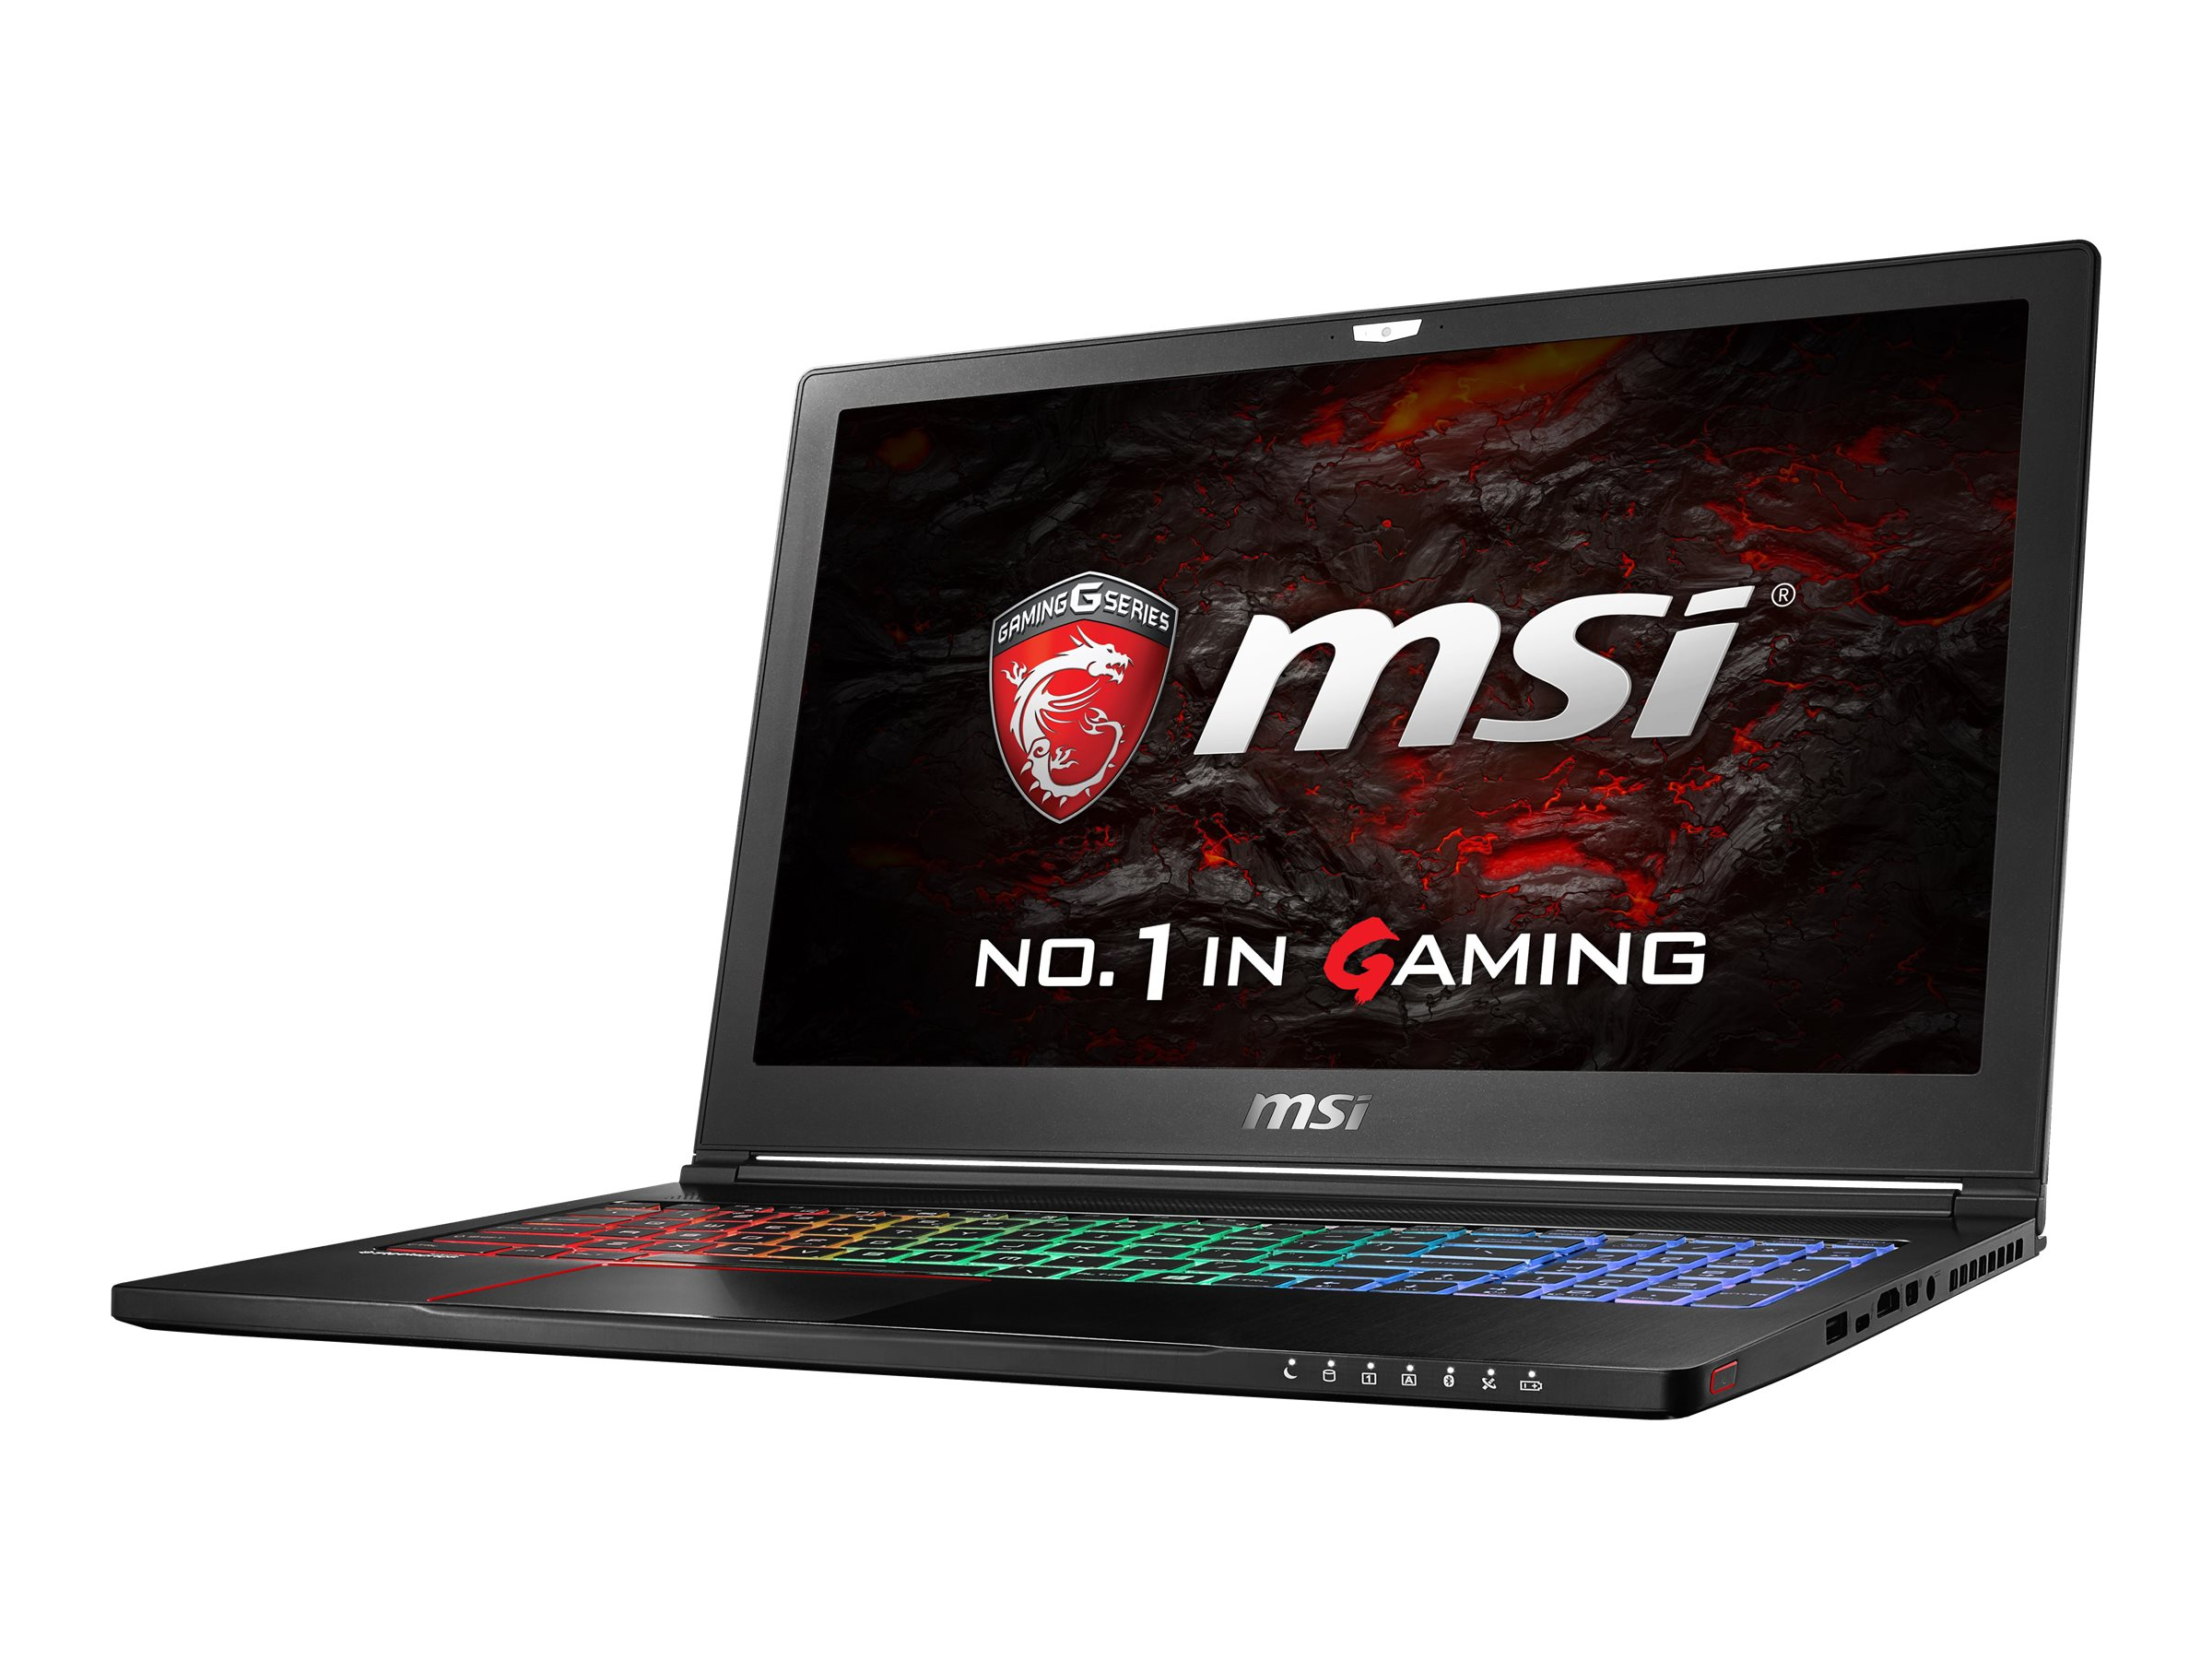 MSI Computer GS63VR STEALTH PRO 4K-021 Image 1